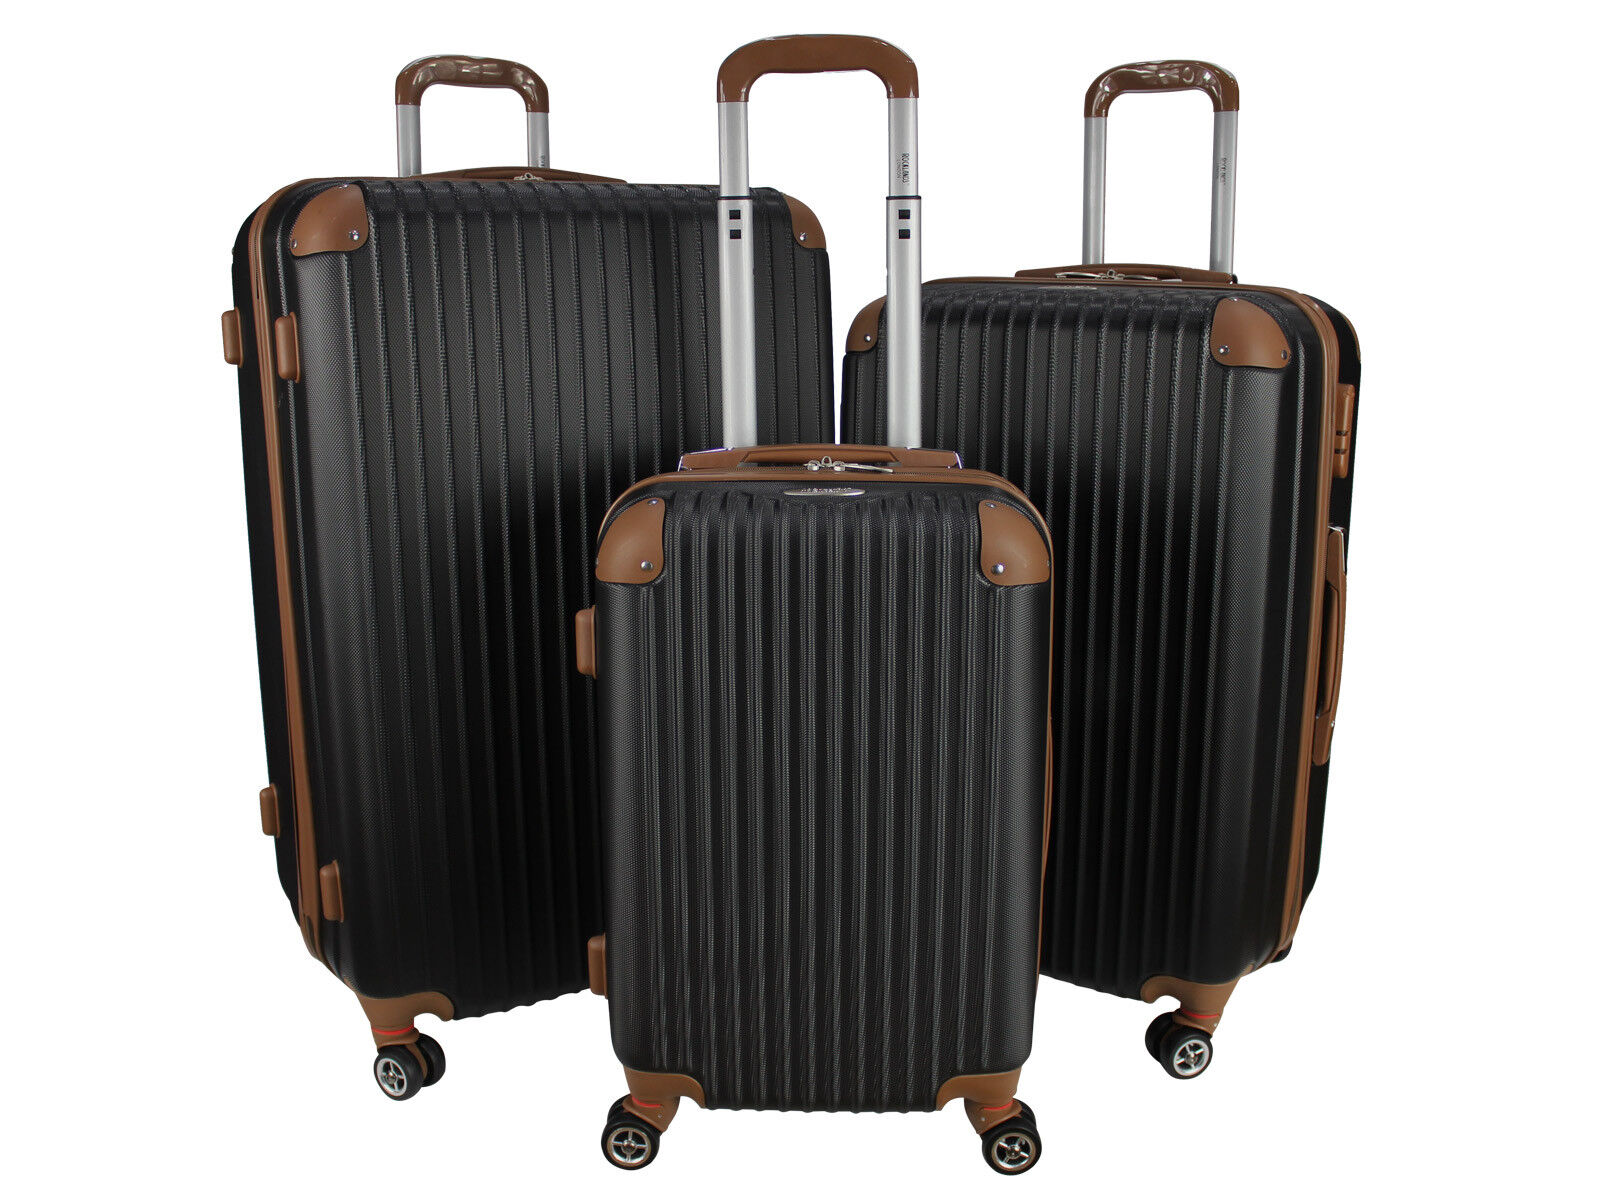 489f0f0bc Cabin Travel Bag 4 Wheel ABS Lightweight Suitcase Hand Luggage ...